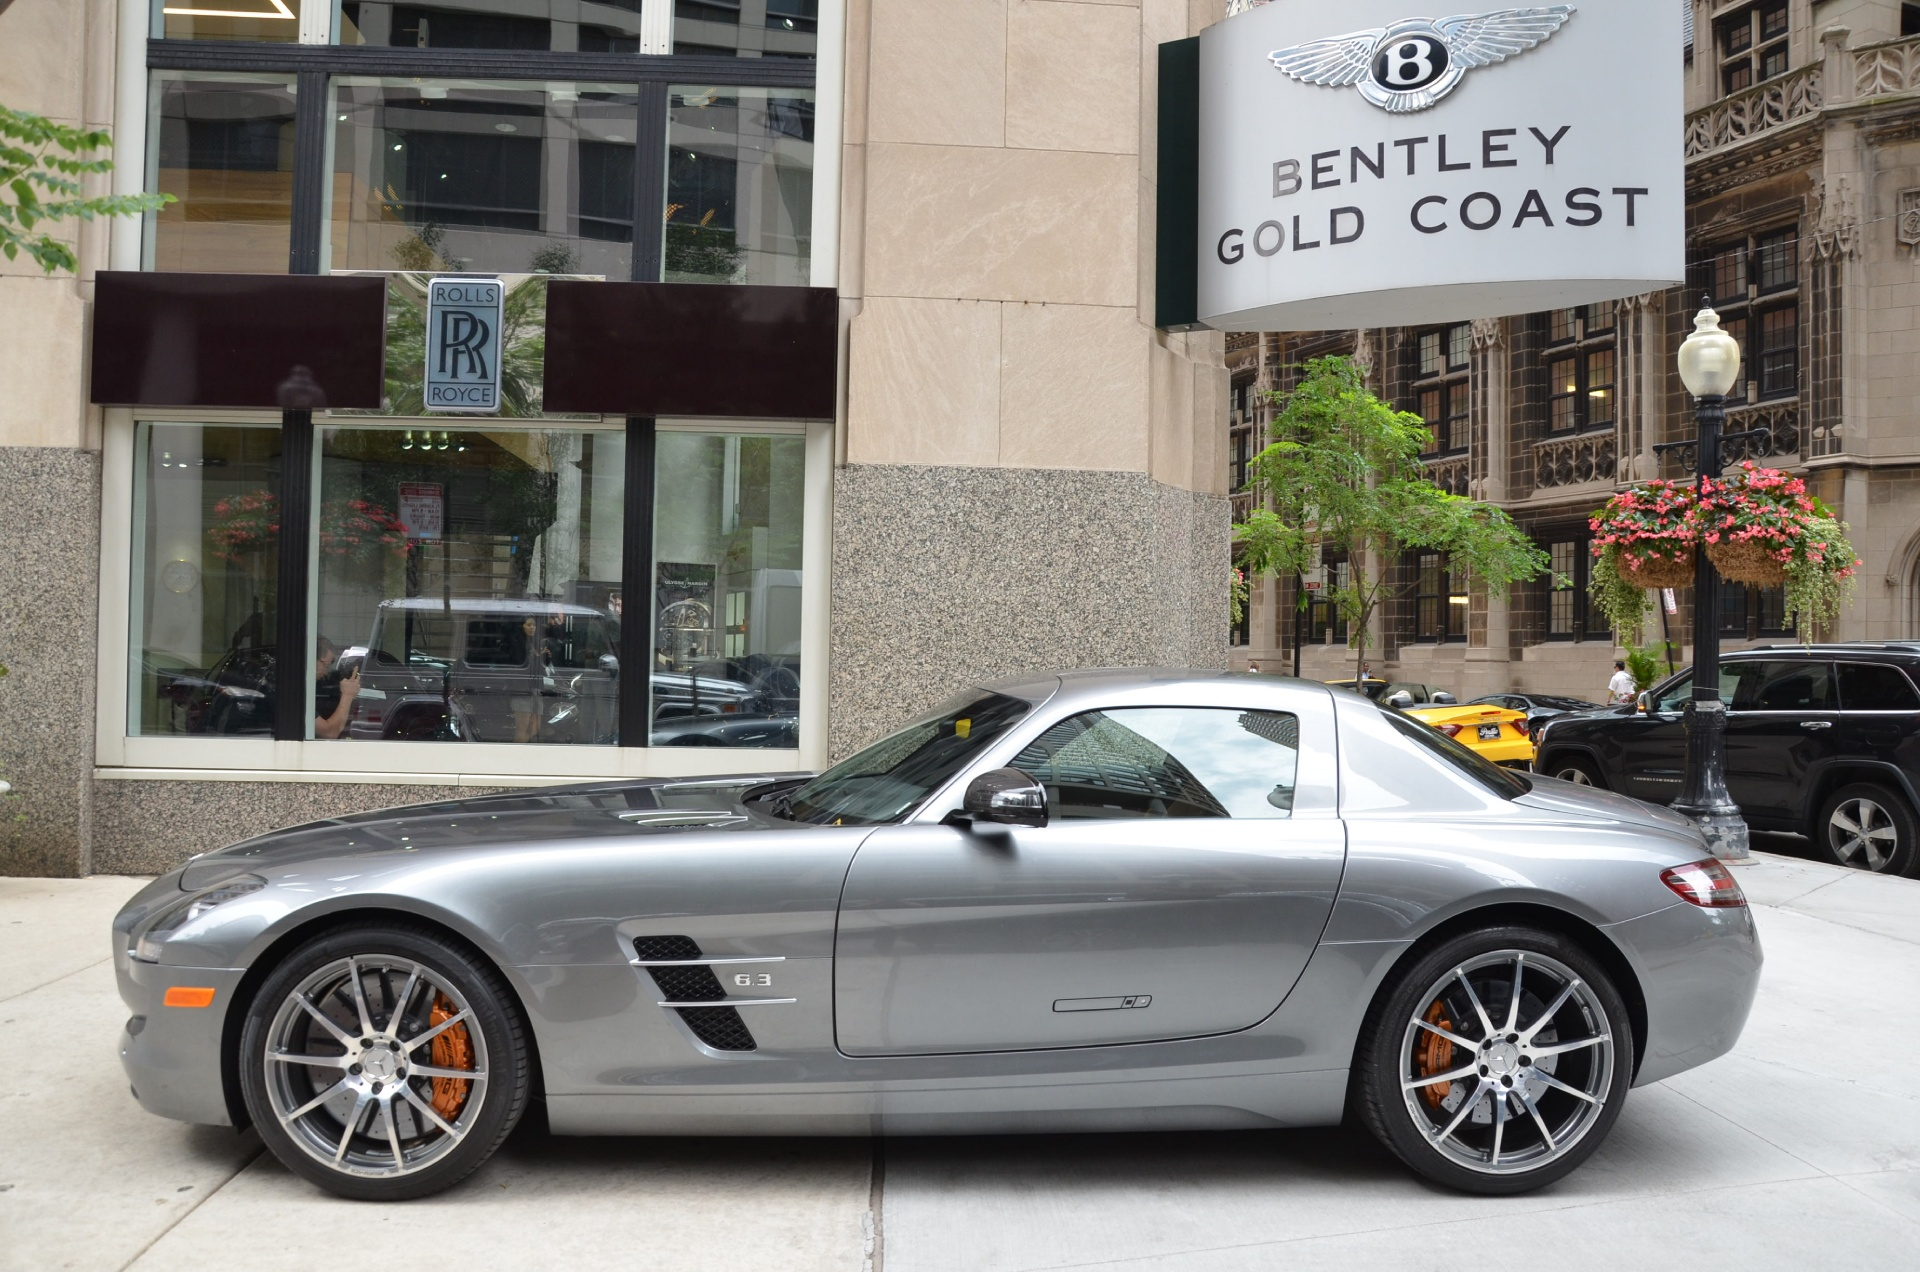 2012 mercedes benz sls class sls amg stock l189a for for Mercedes benz dealerships in chicago area